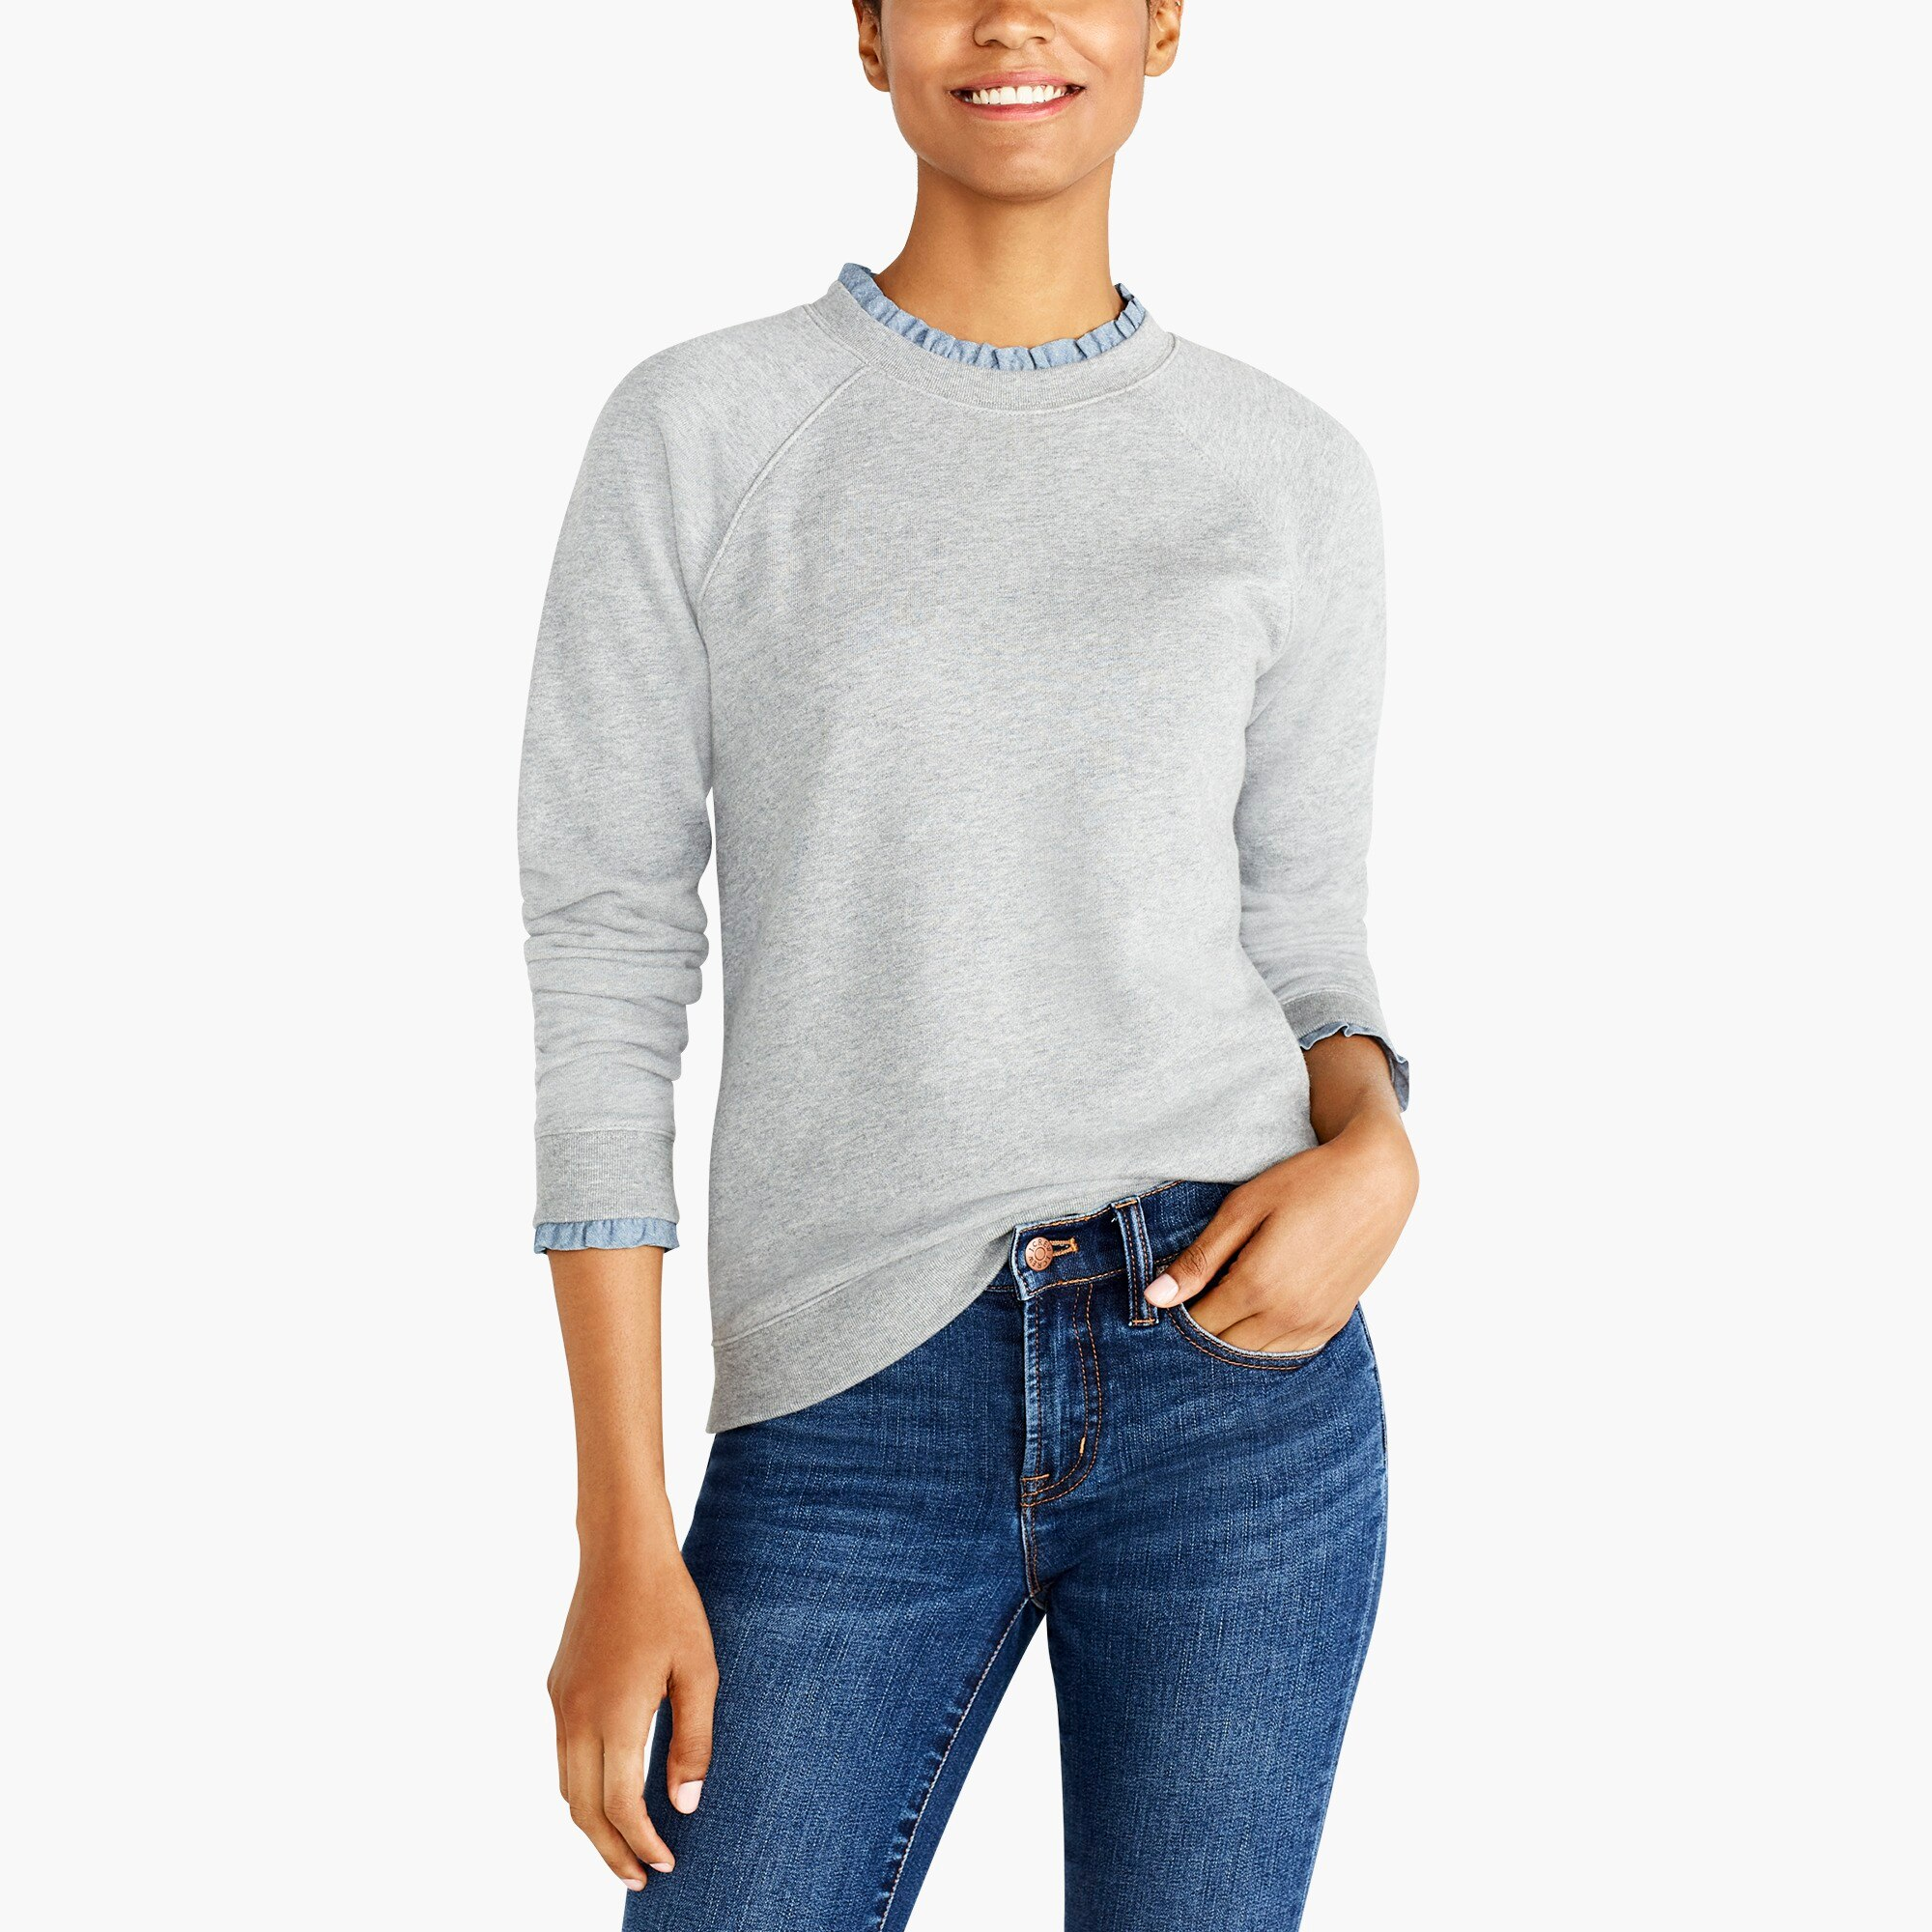 Image 1 for Woven ruffle-neck pullover